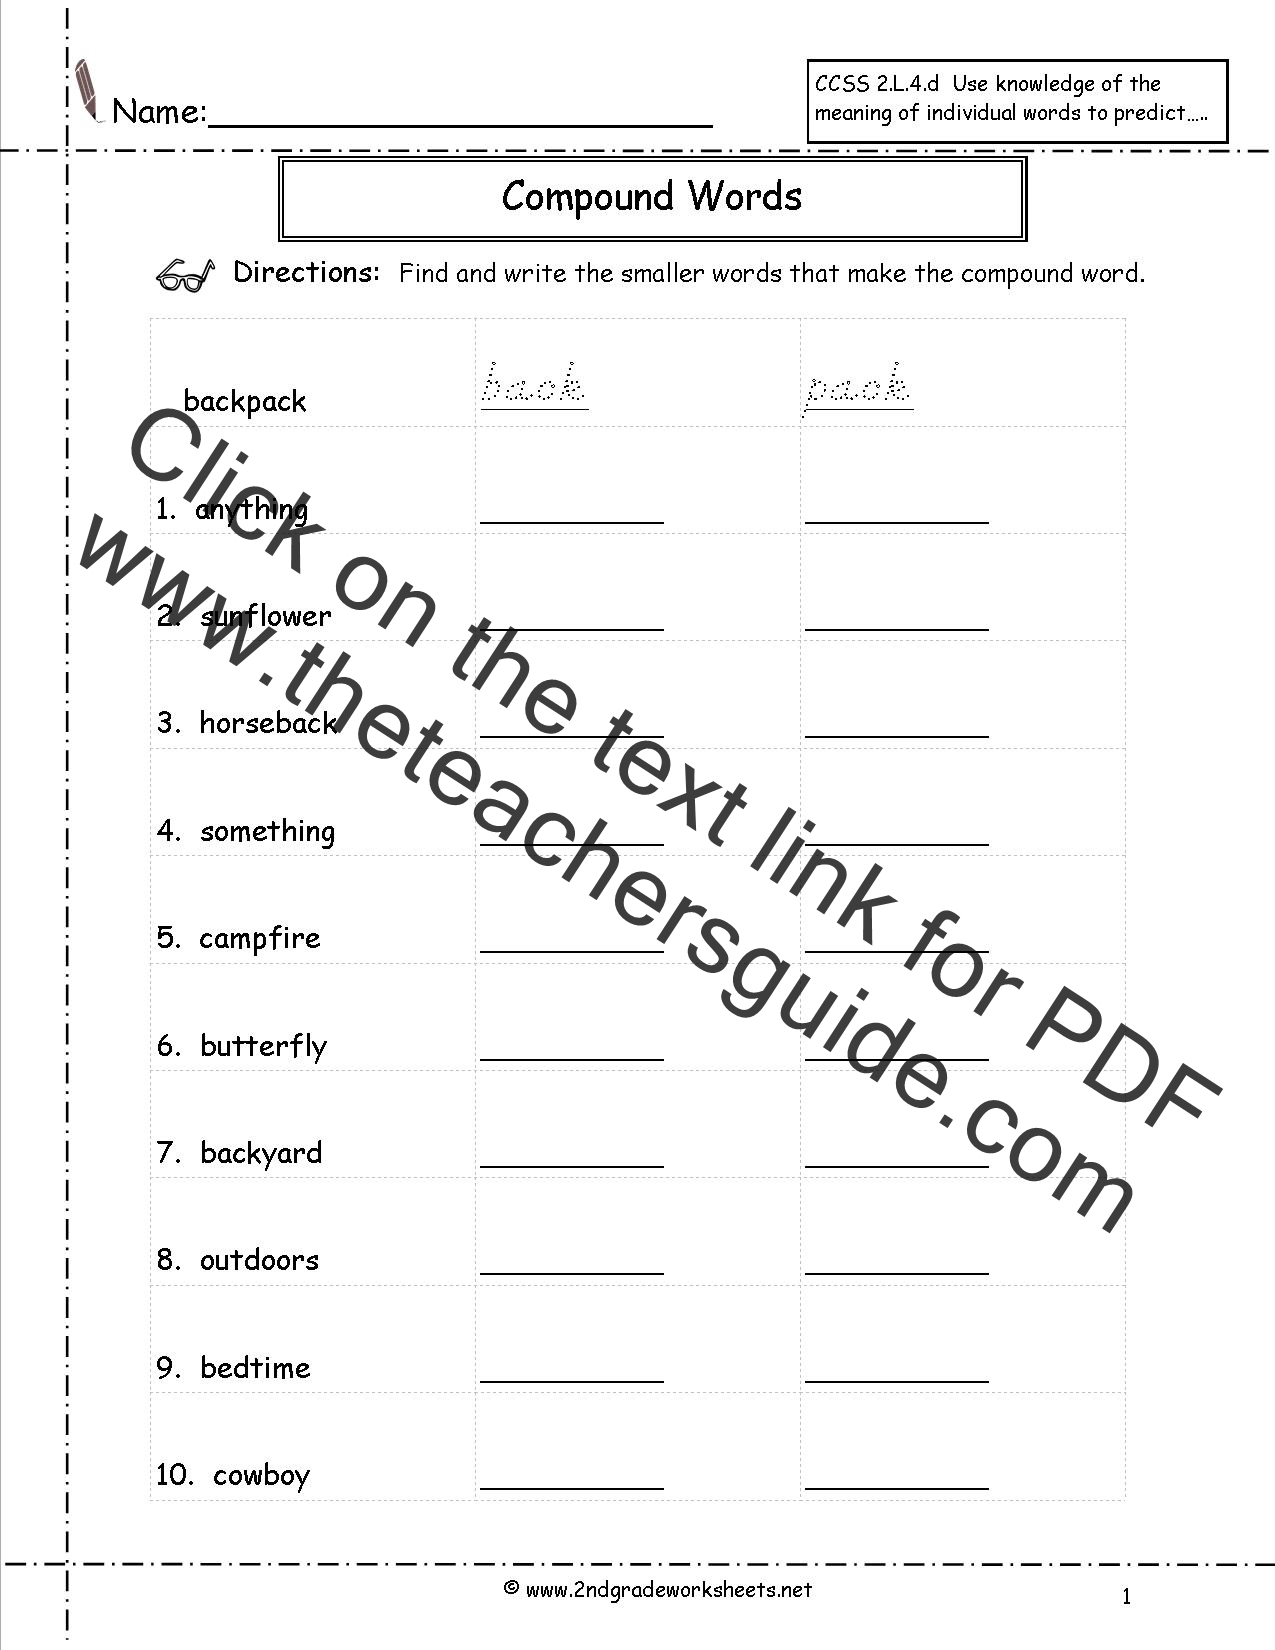 Worksheets 2nd Grade Language Worksheets free languagegrammar worksheets and printouts compound words worksheets